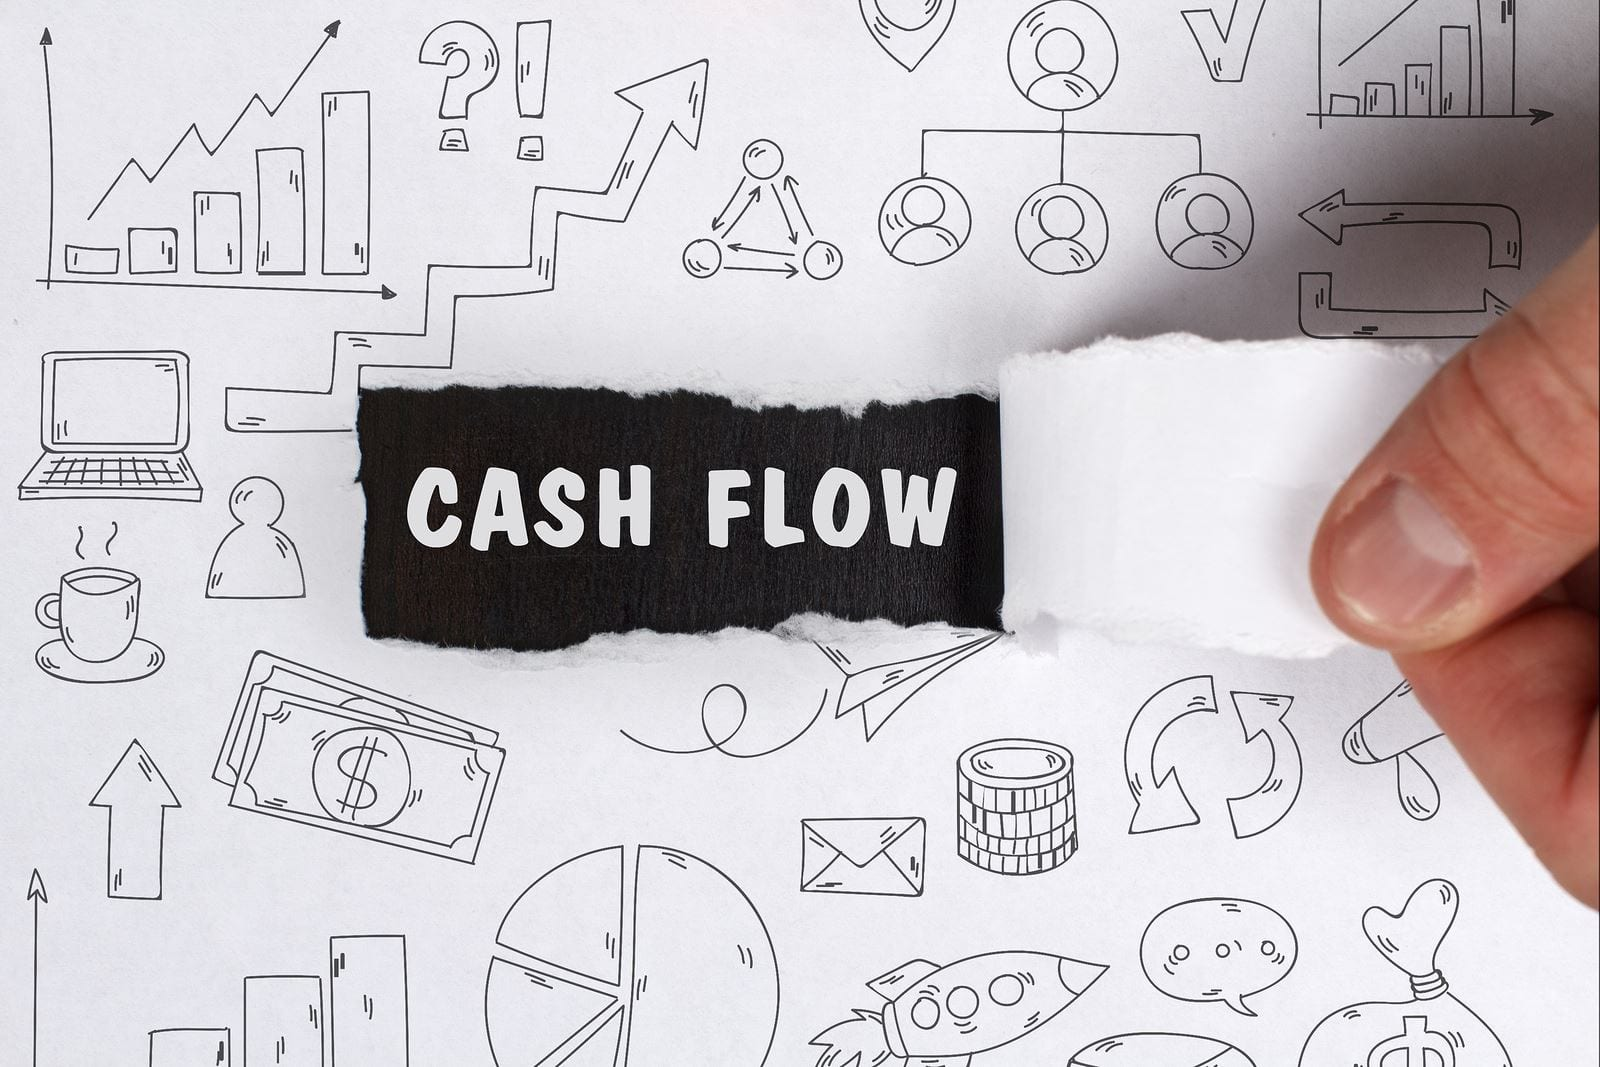 Best Investments For 2020.What Are The Best Cash Flow Investments For 2020 Mashvisor